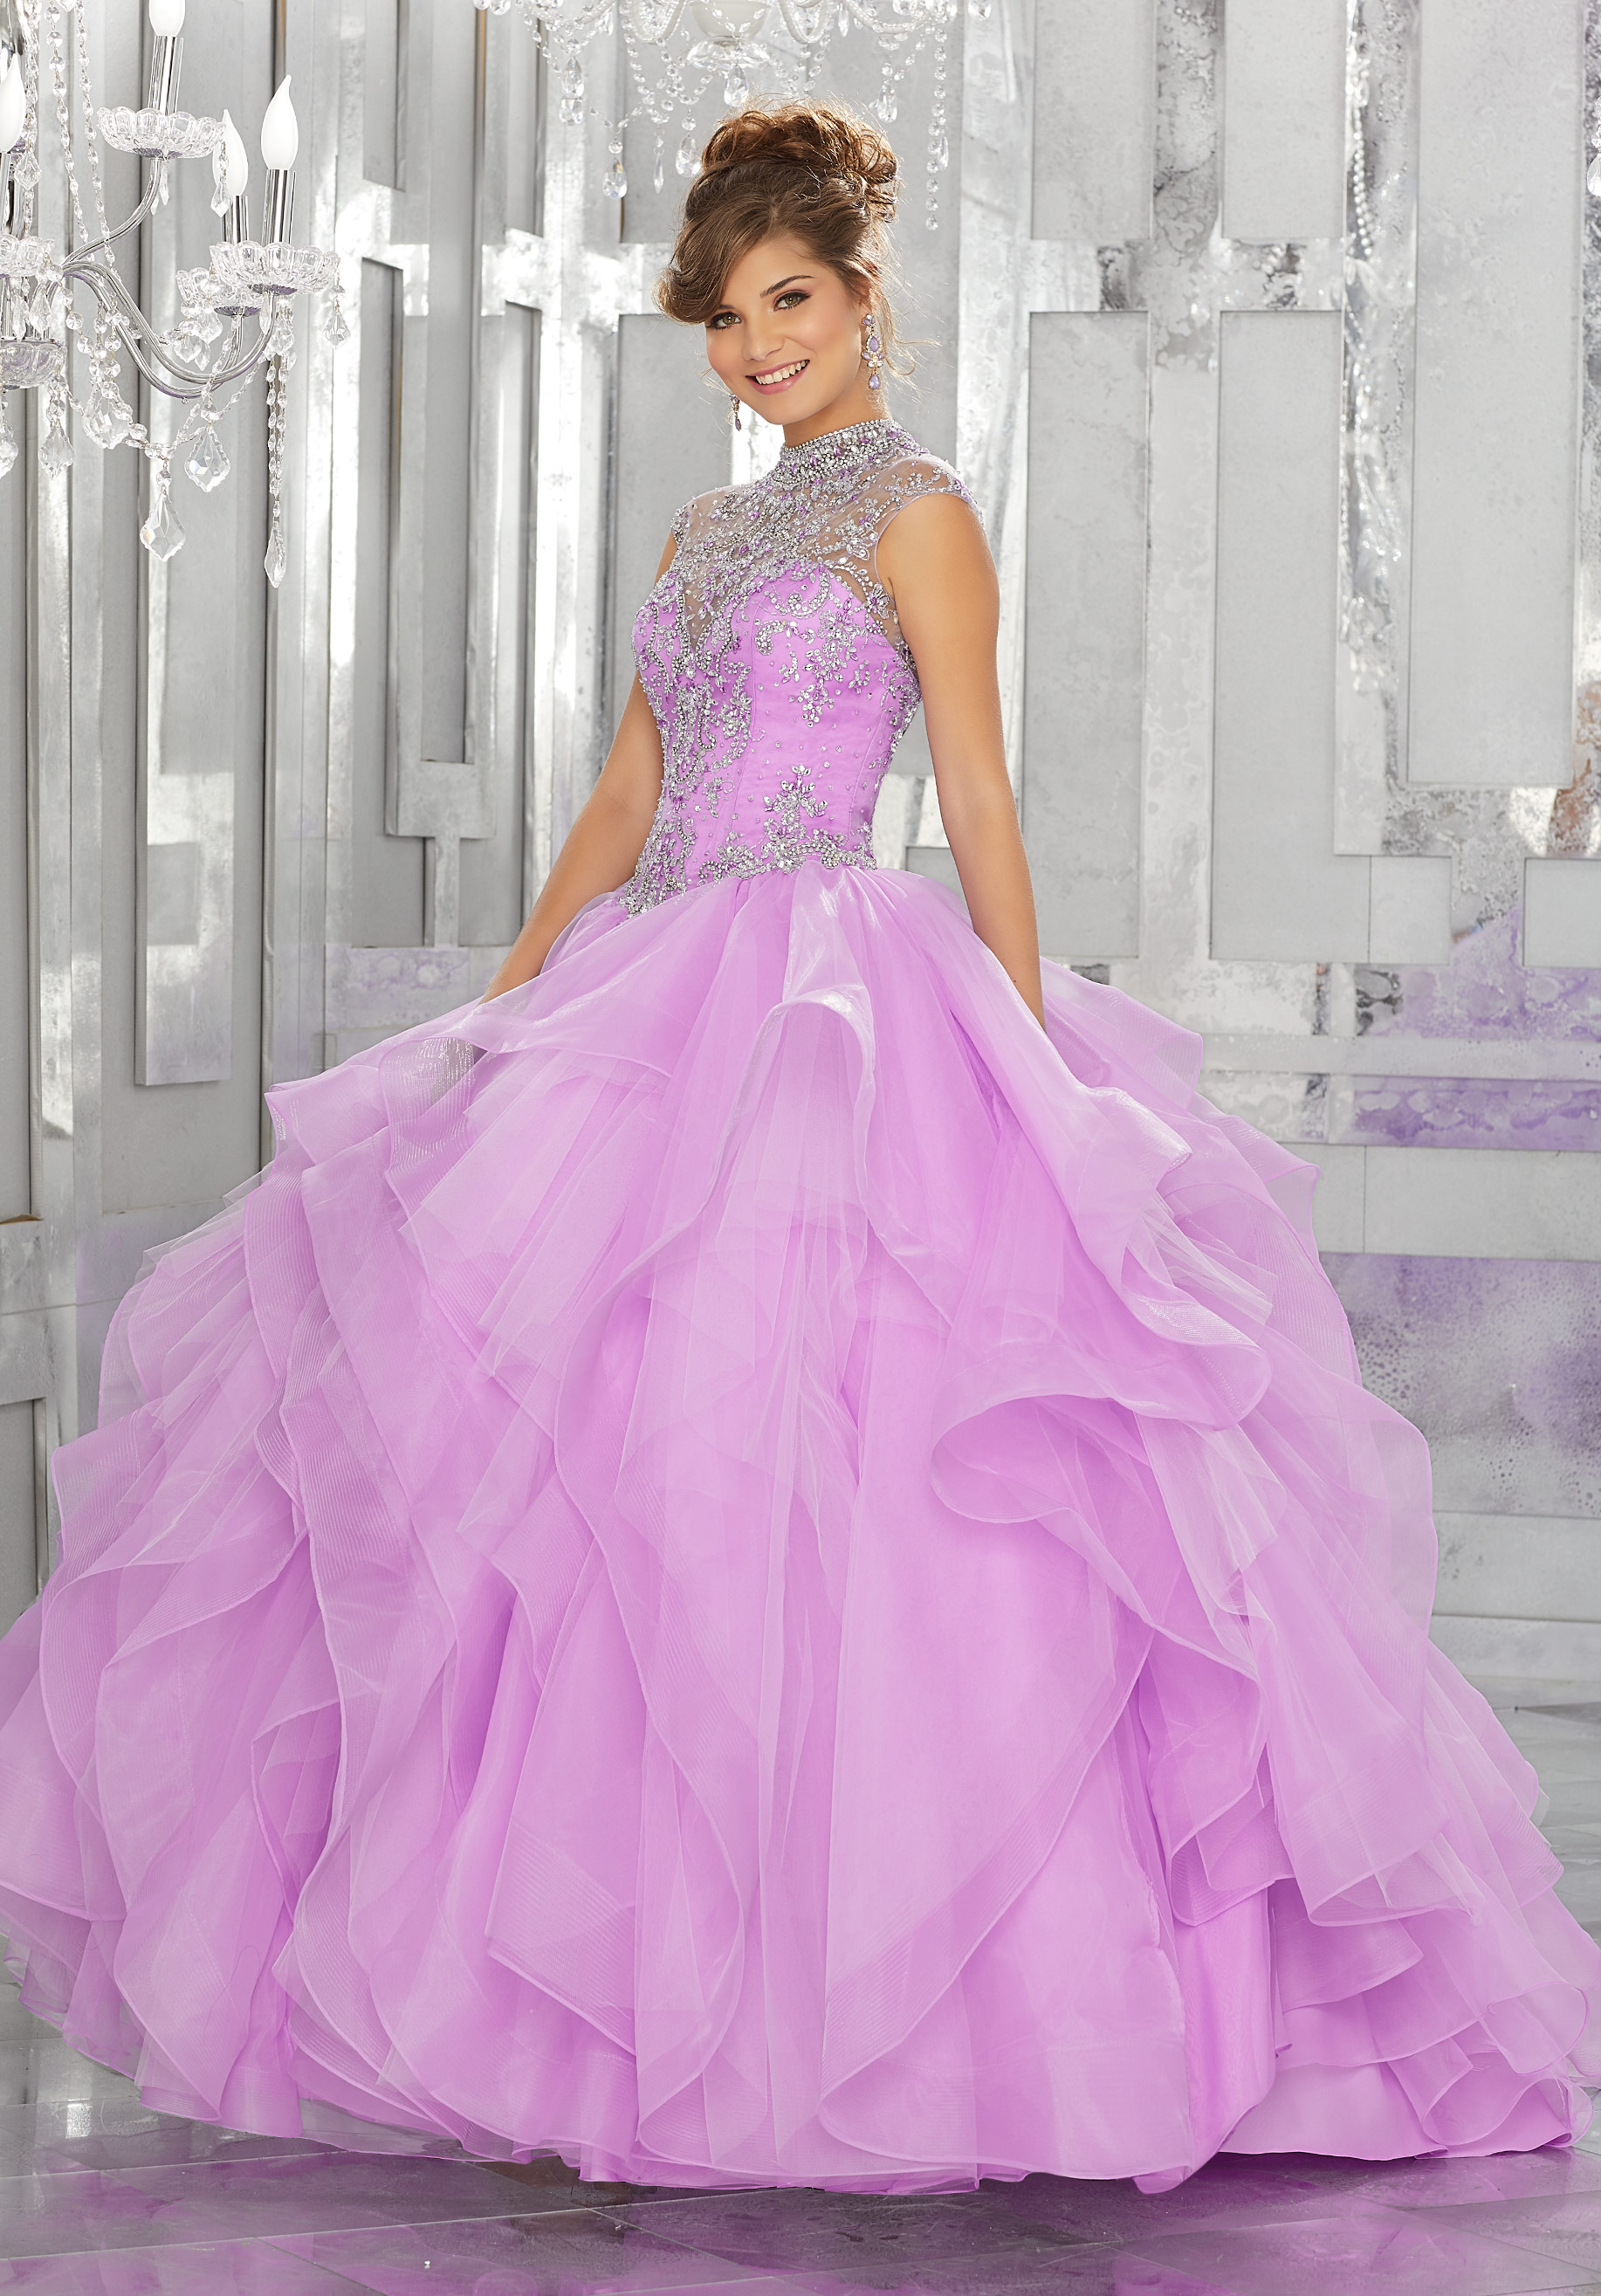 6078f6ff64d Beaded Lace Bodice With Flounced Tulle Ball Gown Quinceanera Dress ...